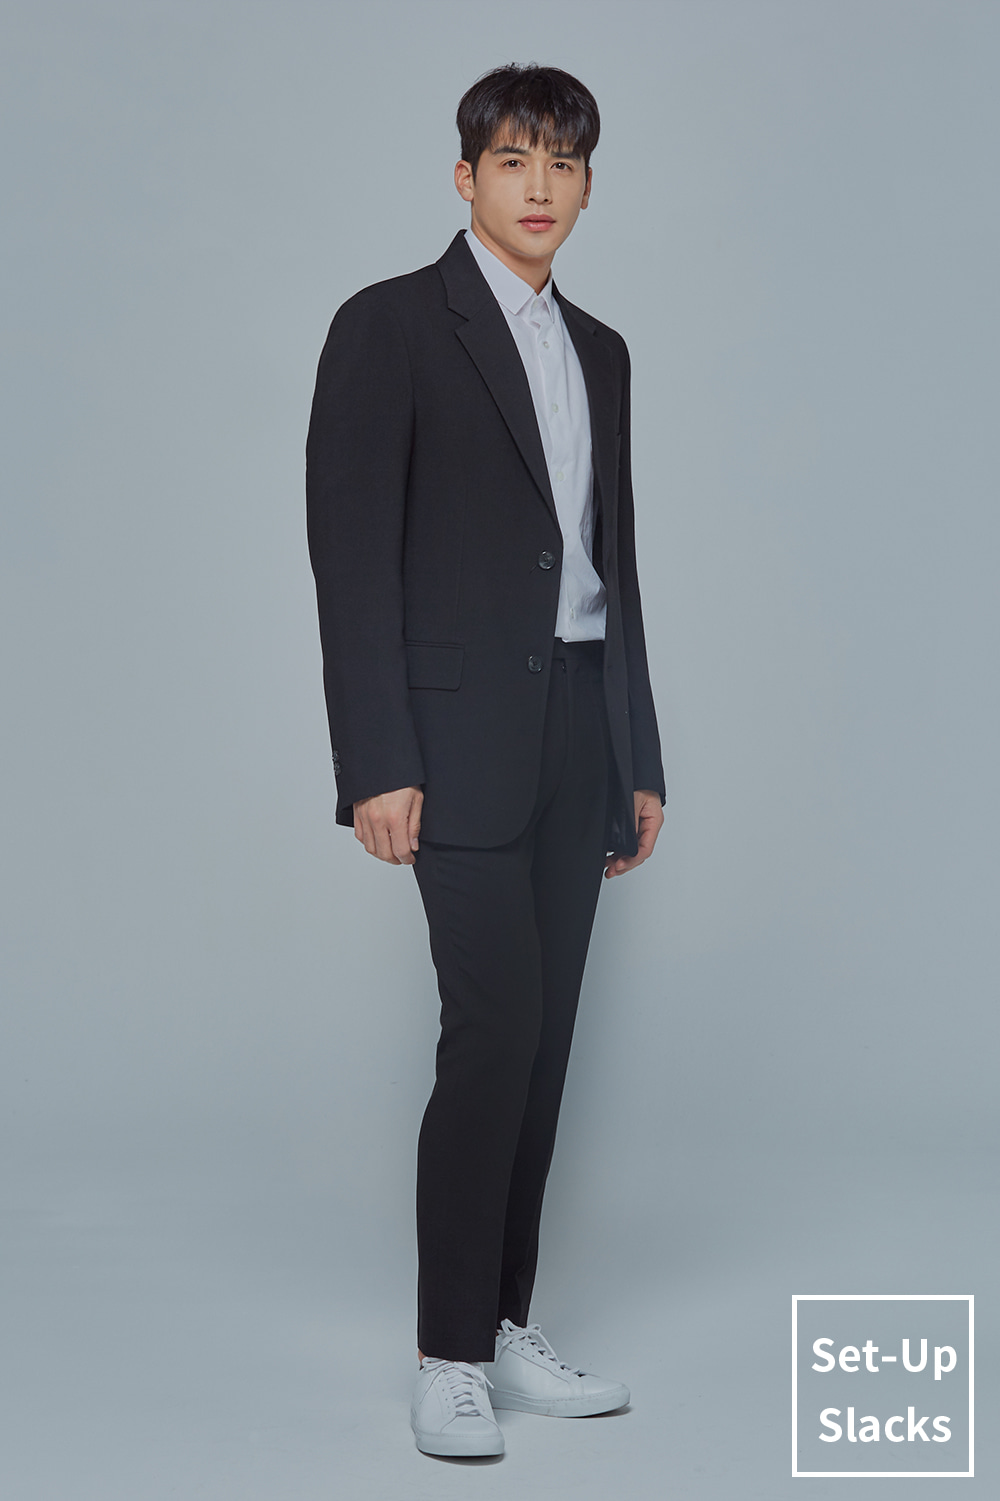 Set-Up Slacks (Black)